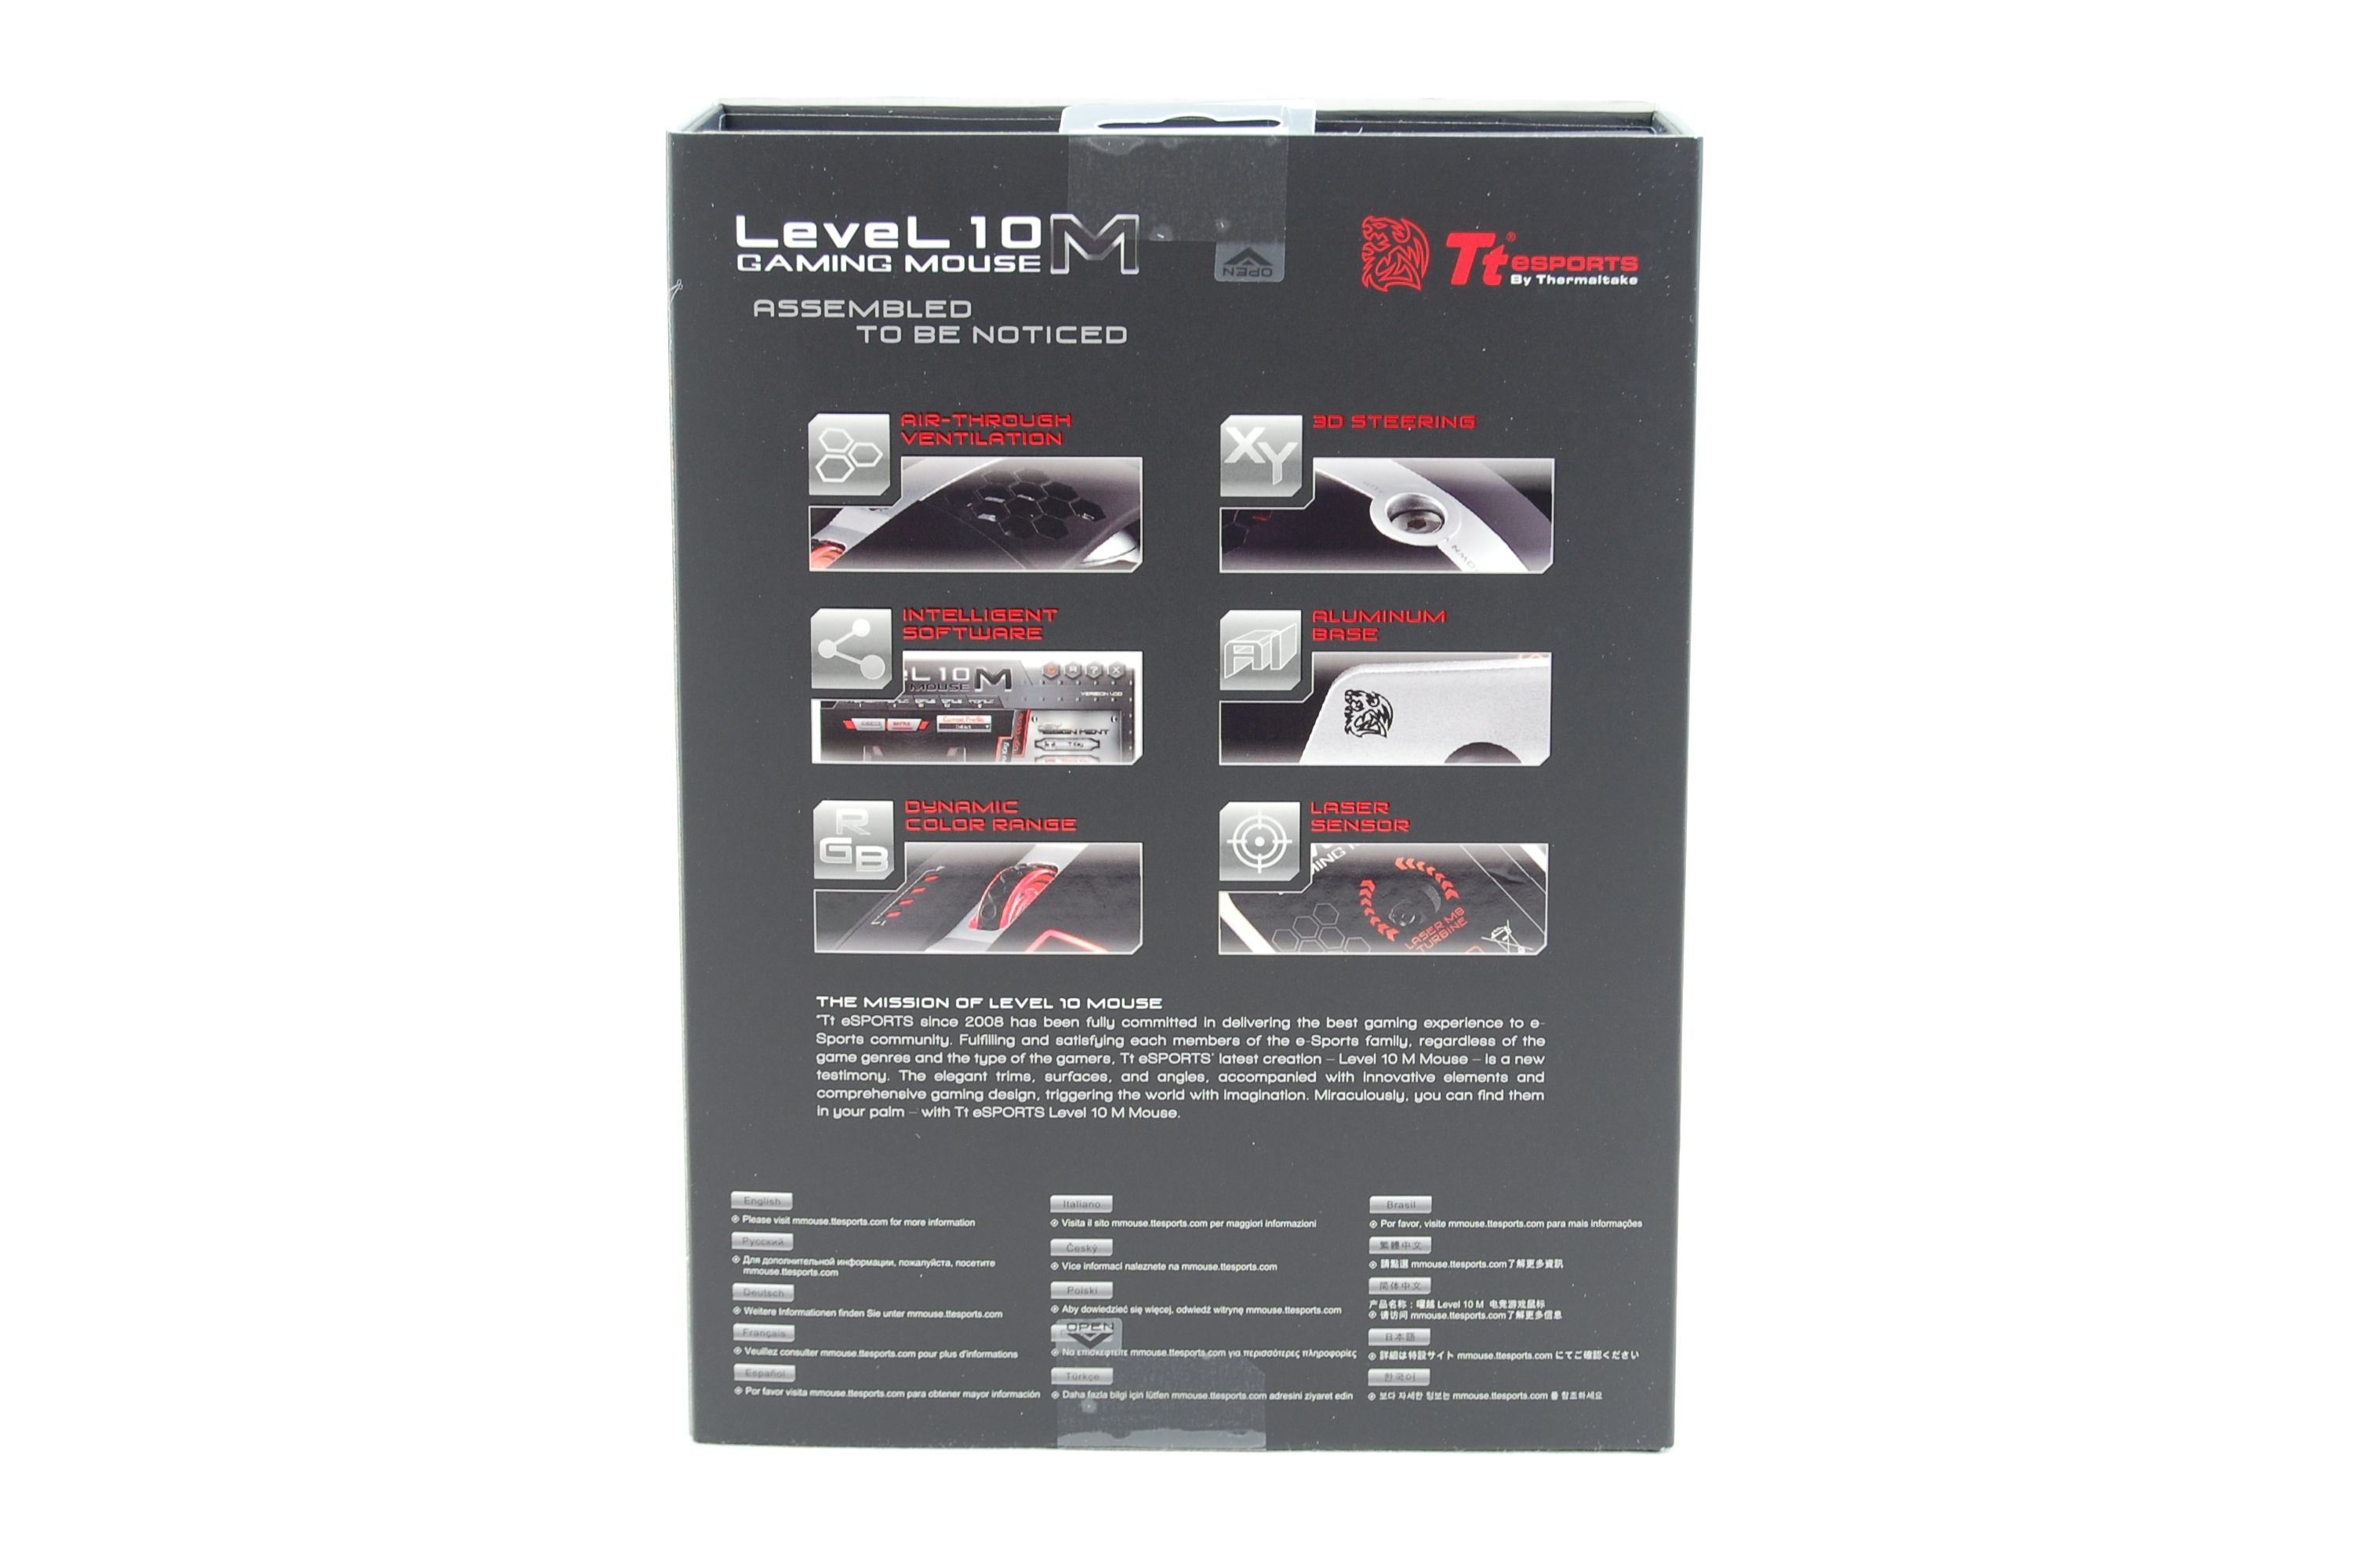 Thermaltake Level 10 M Gaming Mouse Review Back of Box